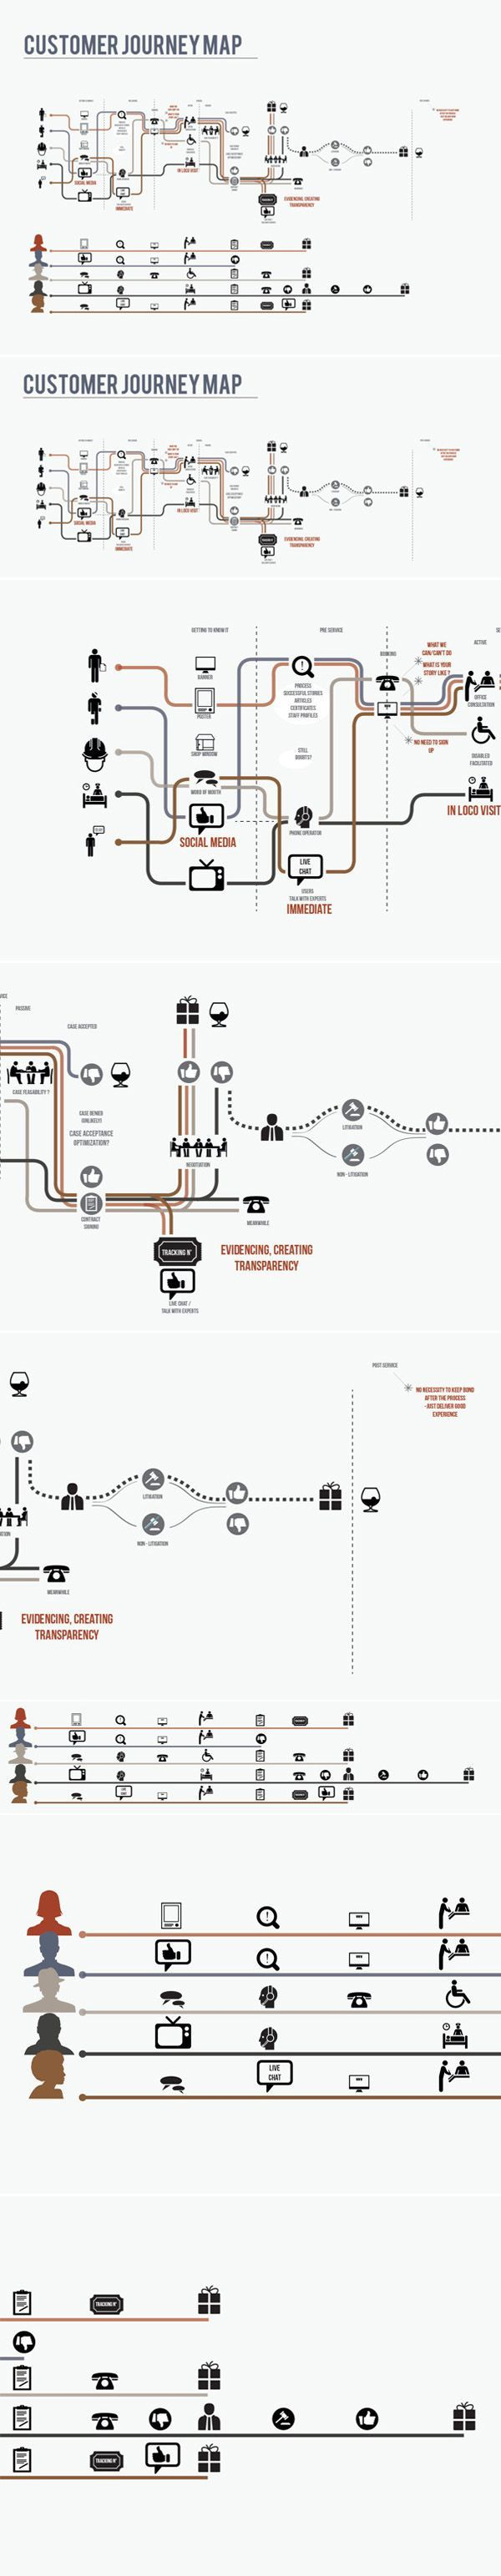 Infographic about journey, in similar style to London Underground map with…